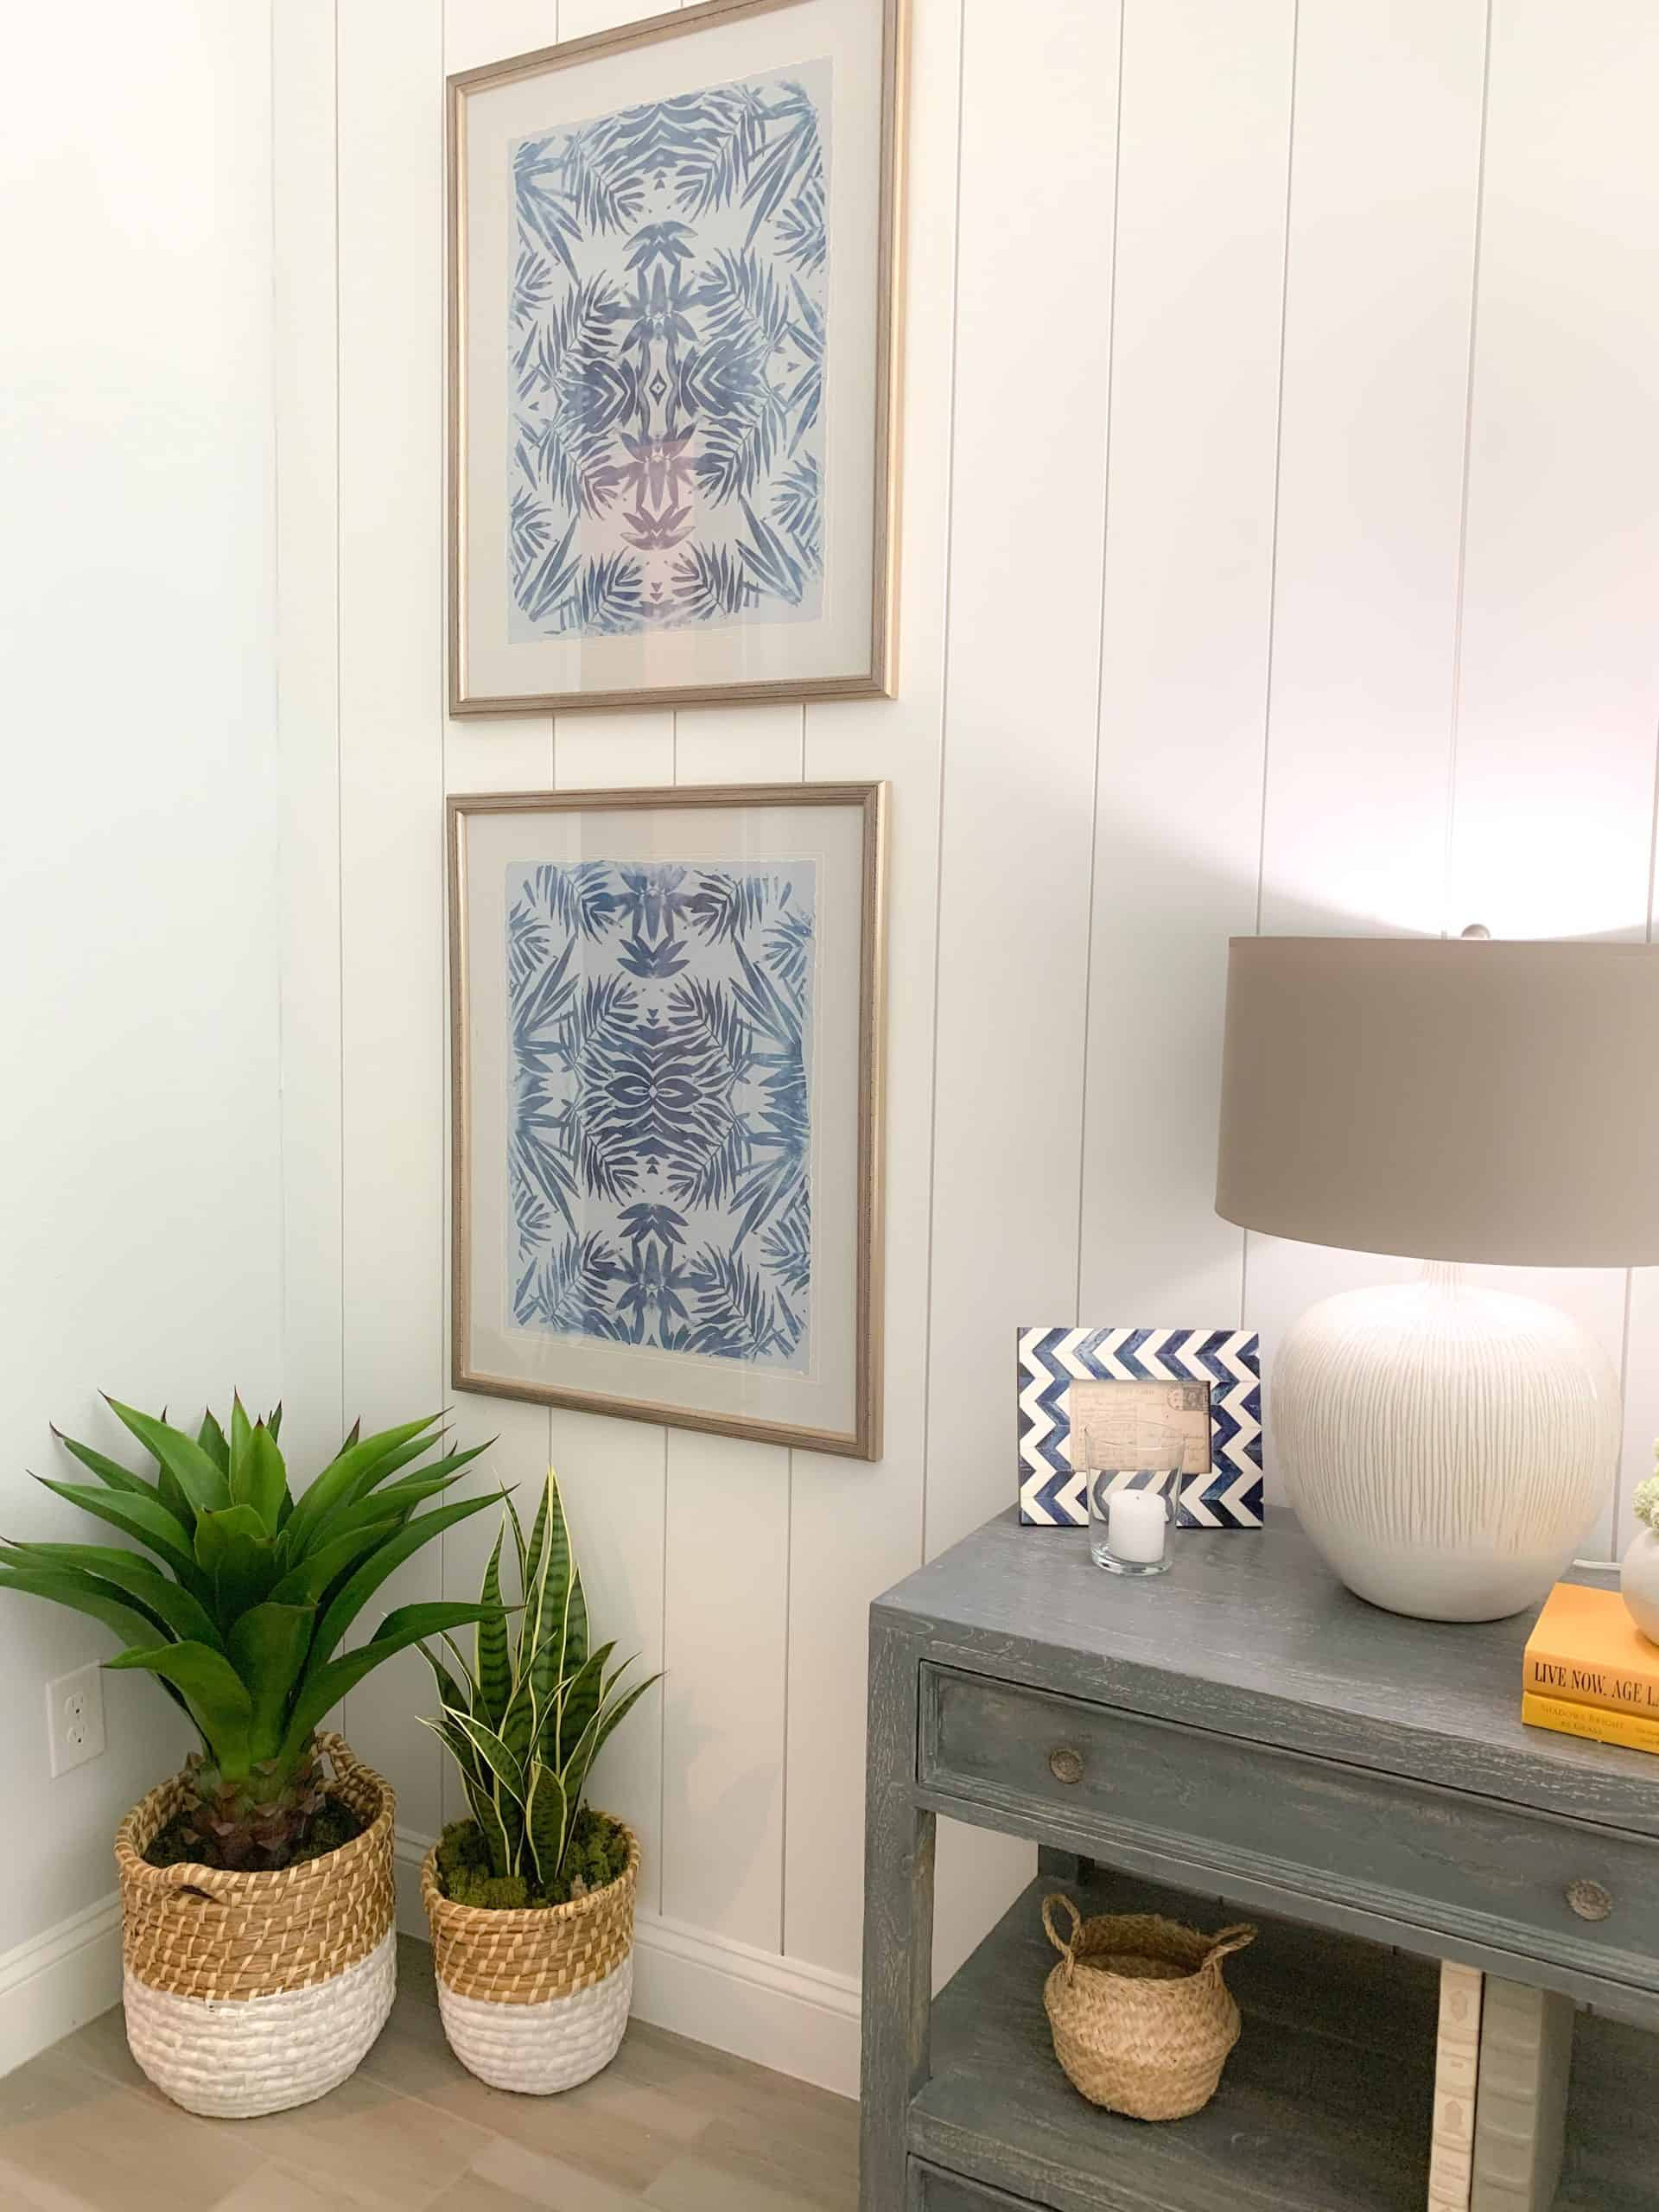 Guest bedroom styling with gray end table and greenery plant accents